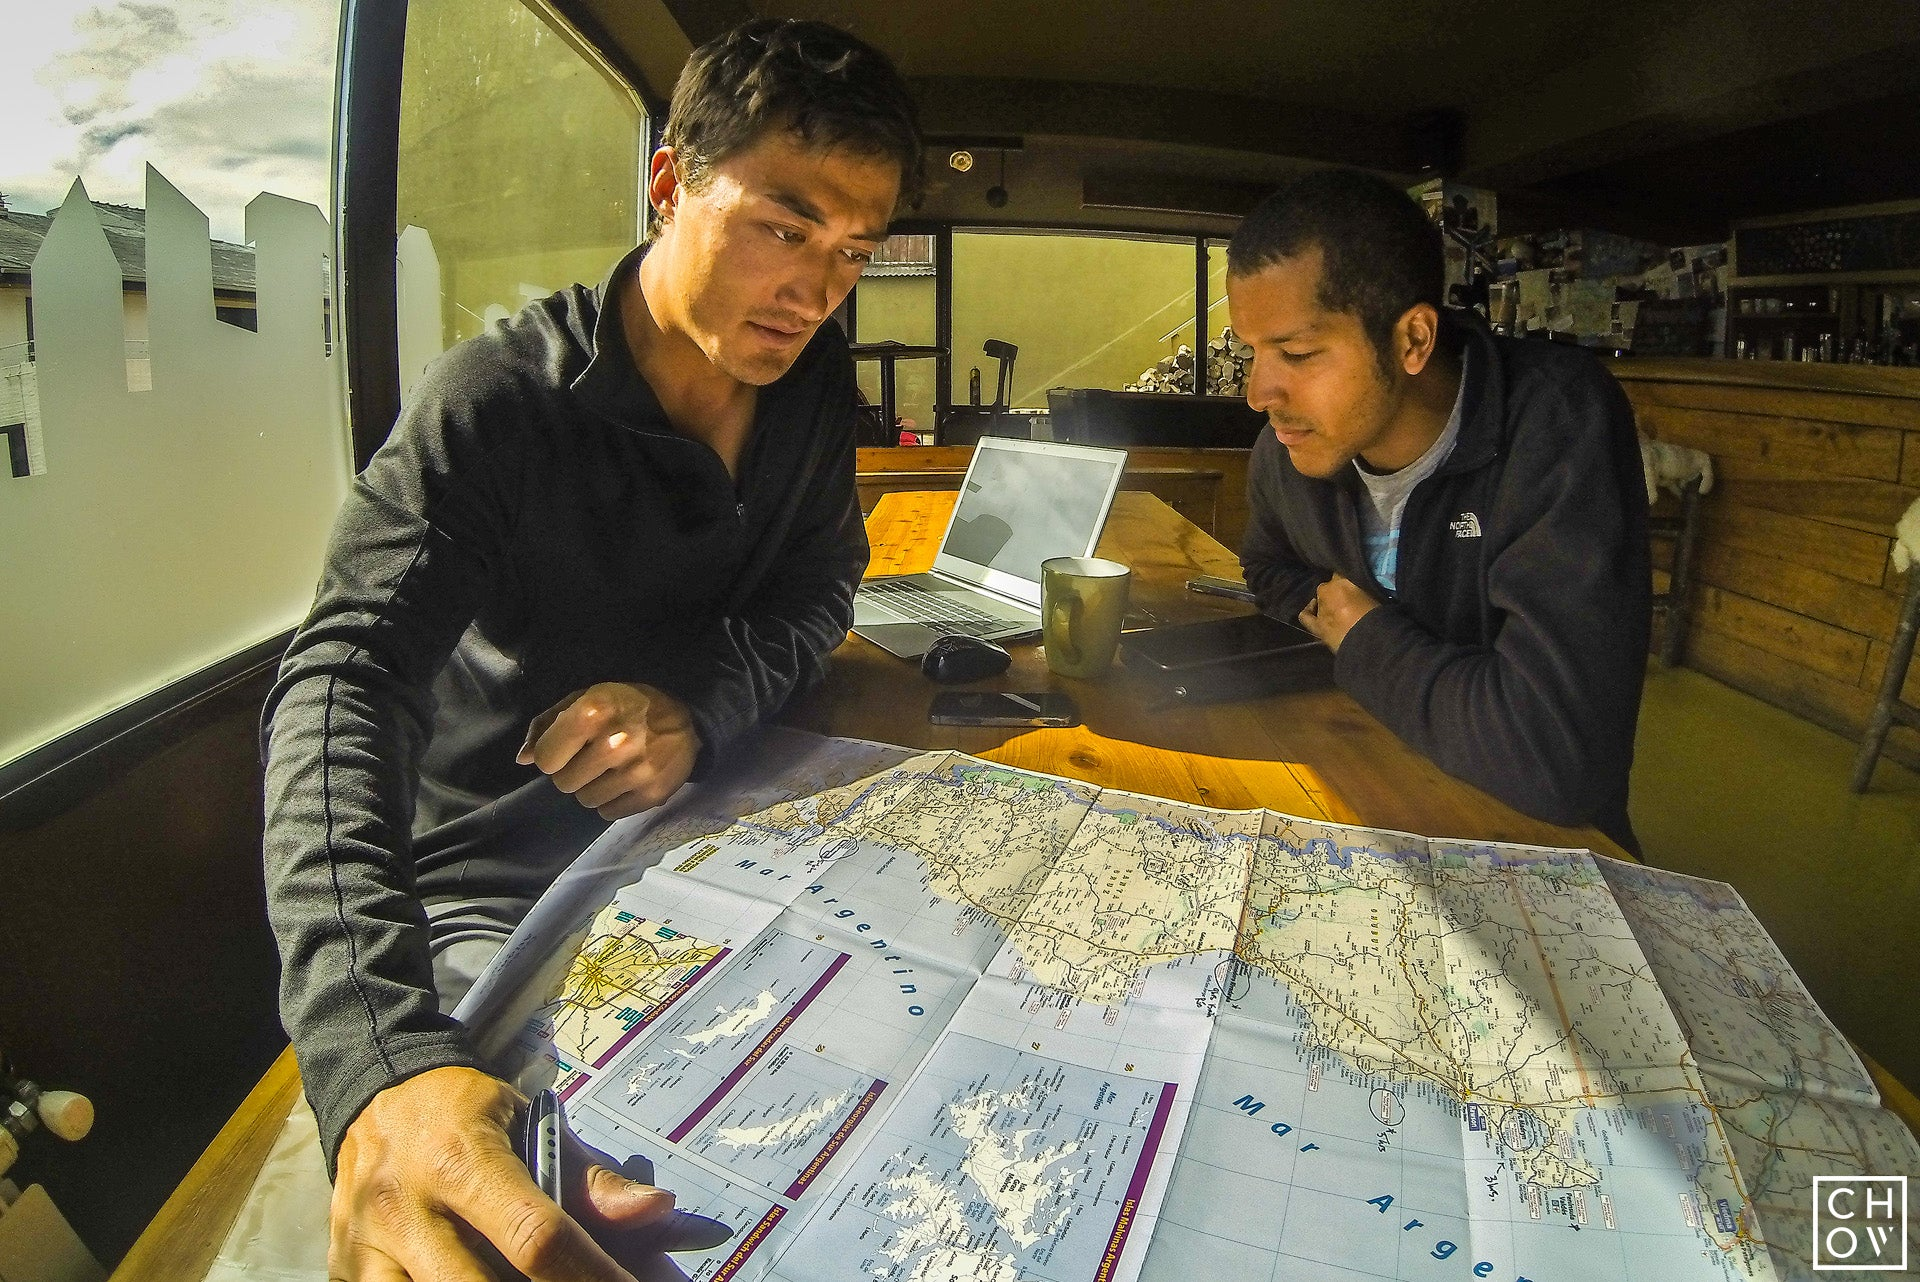 Route Planning in a Bariloche Hostel